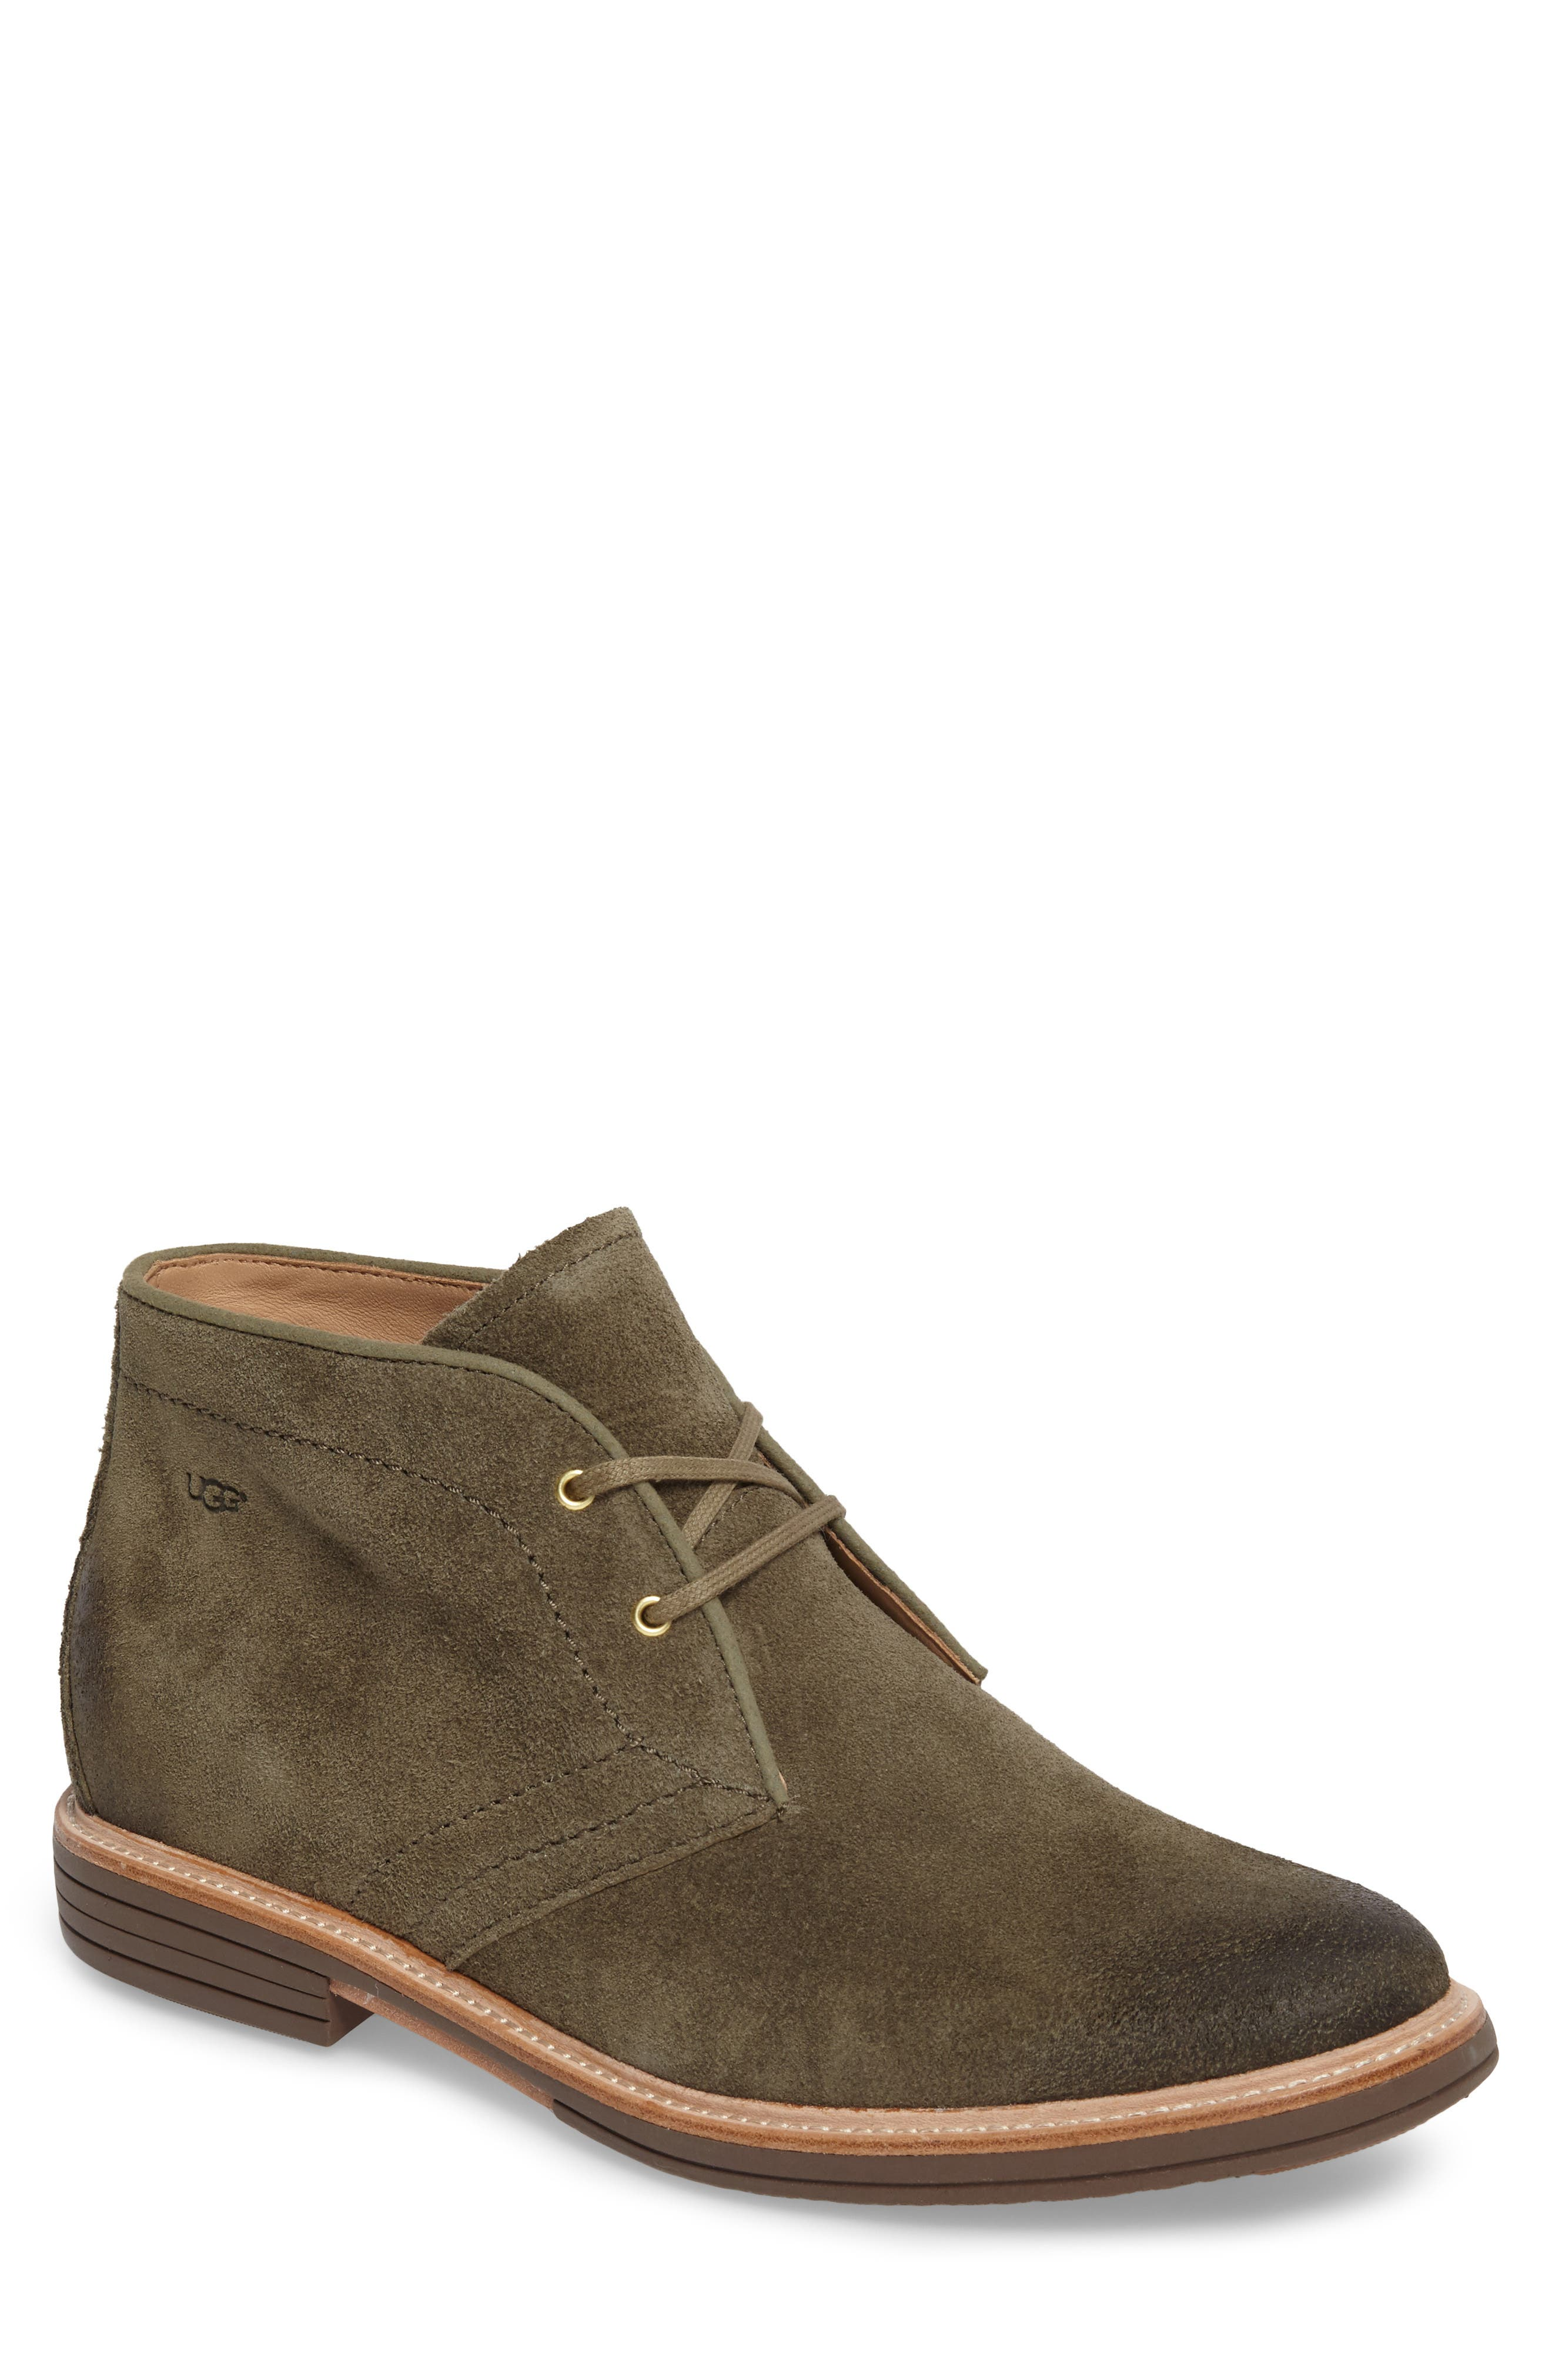 Australia Dagmann Chukka Boot,                         Main,                         color, Olive